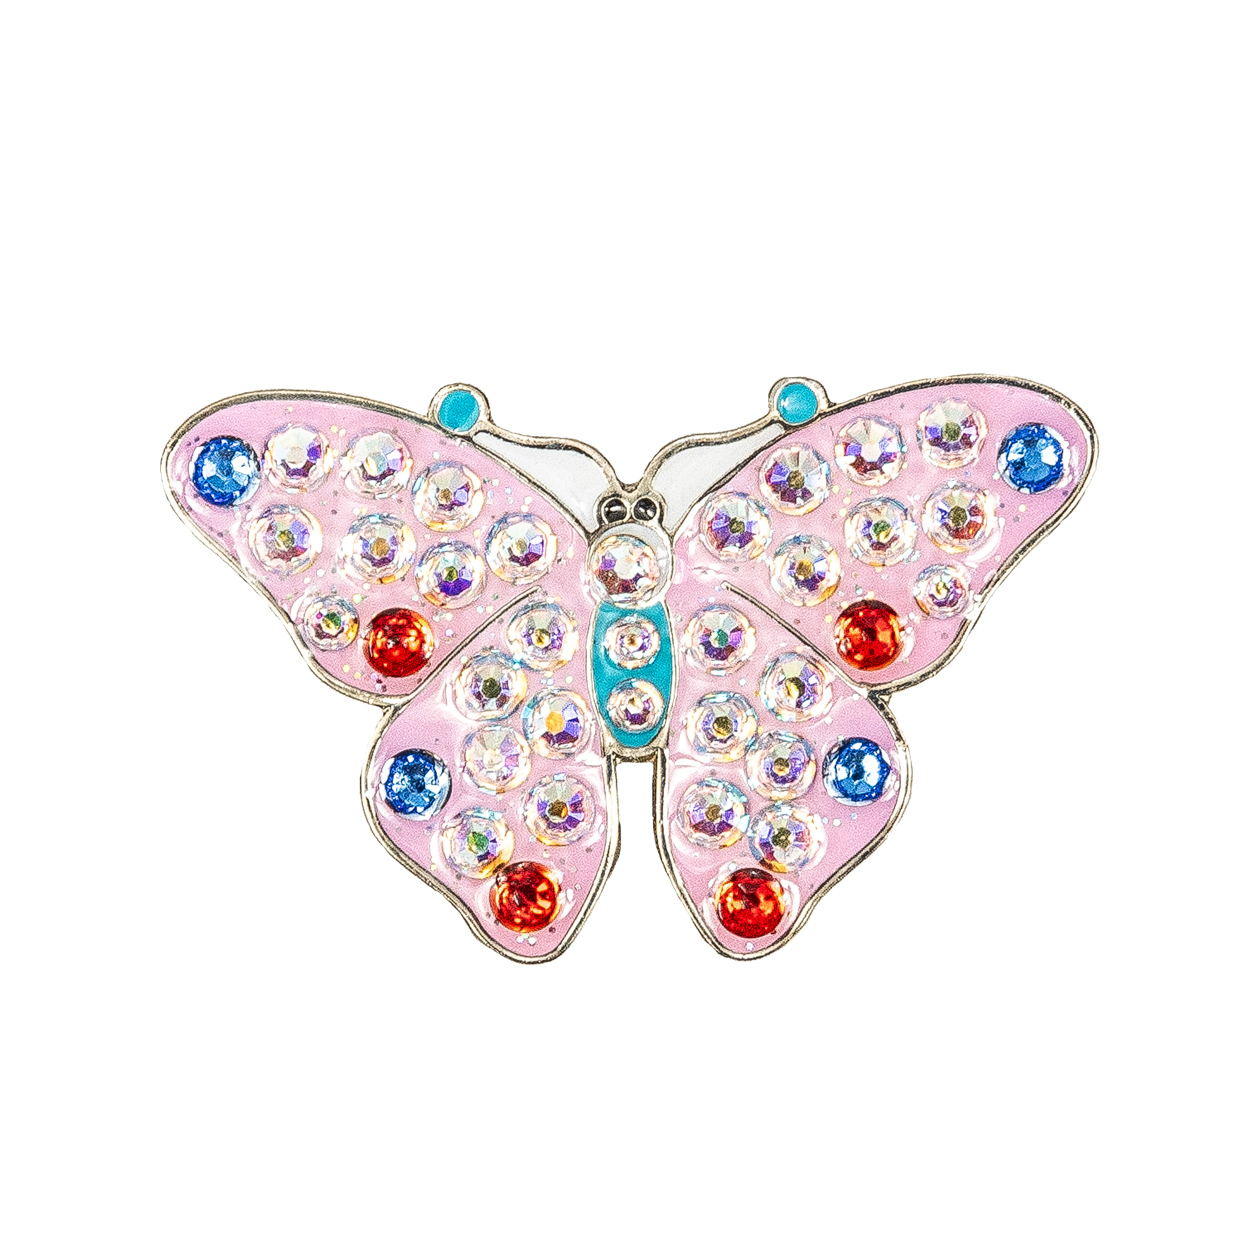 29. Butterfly pink